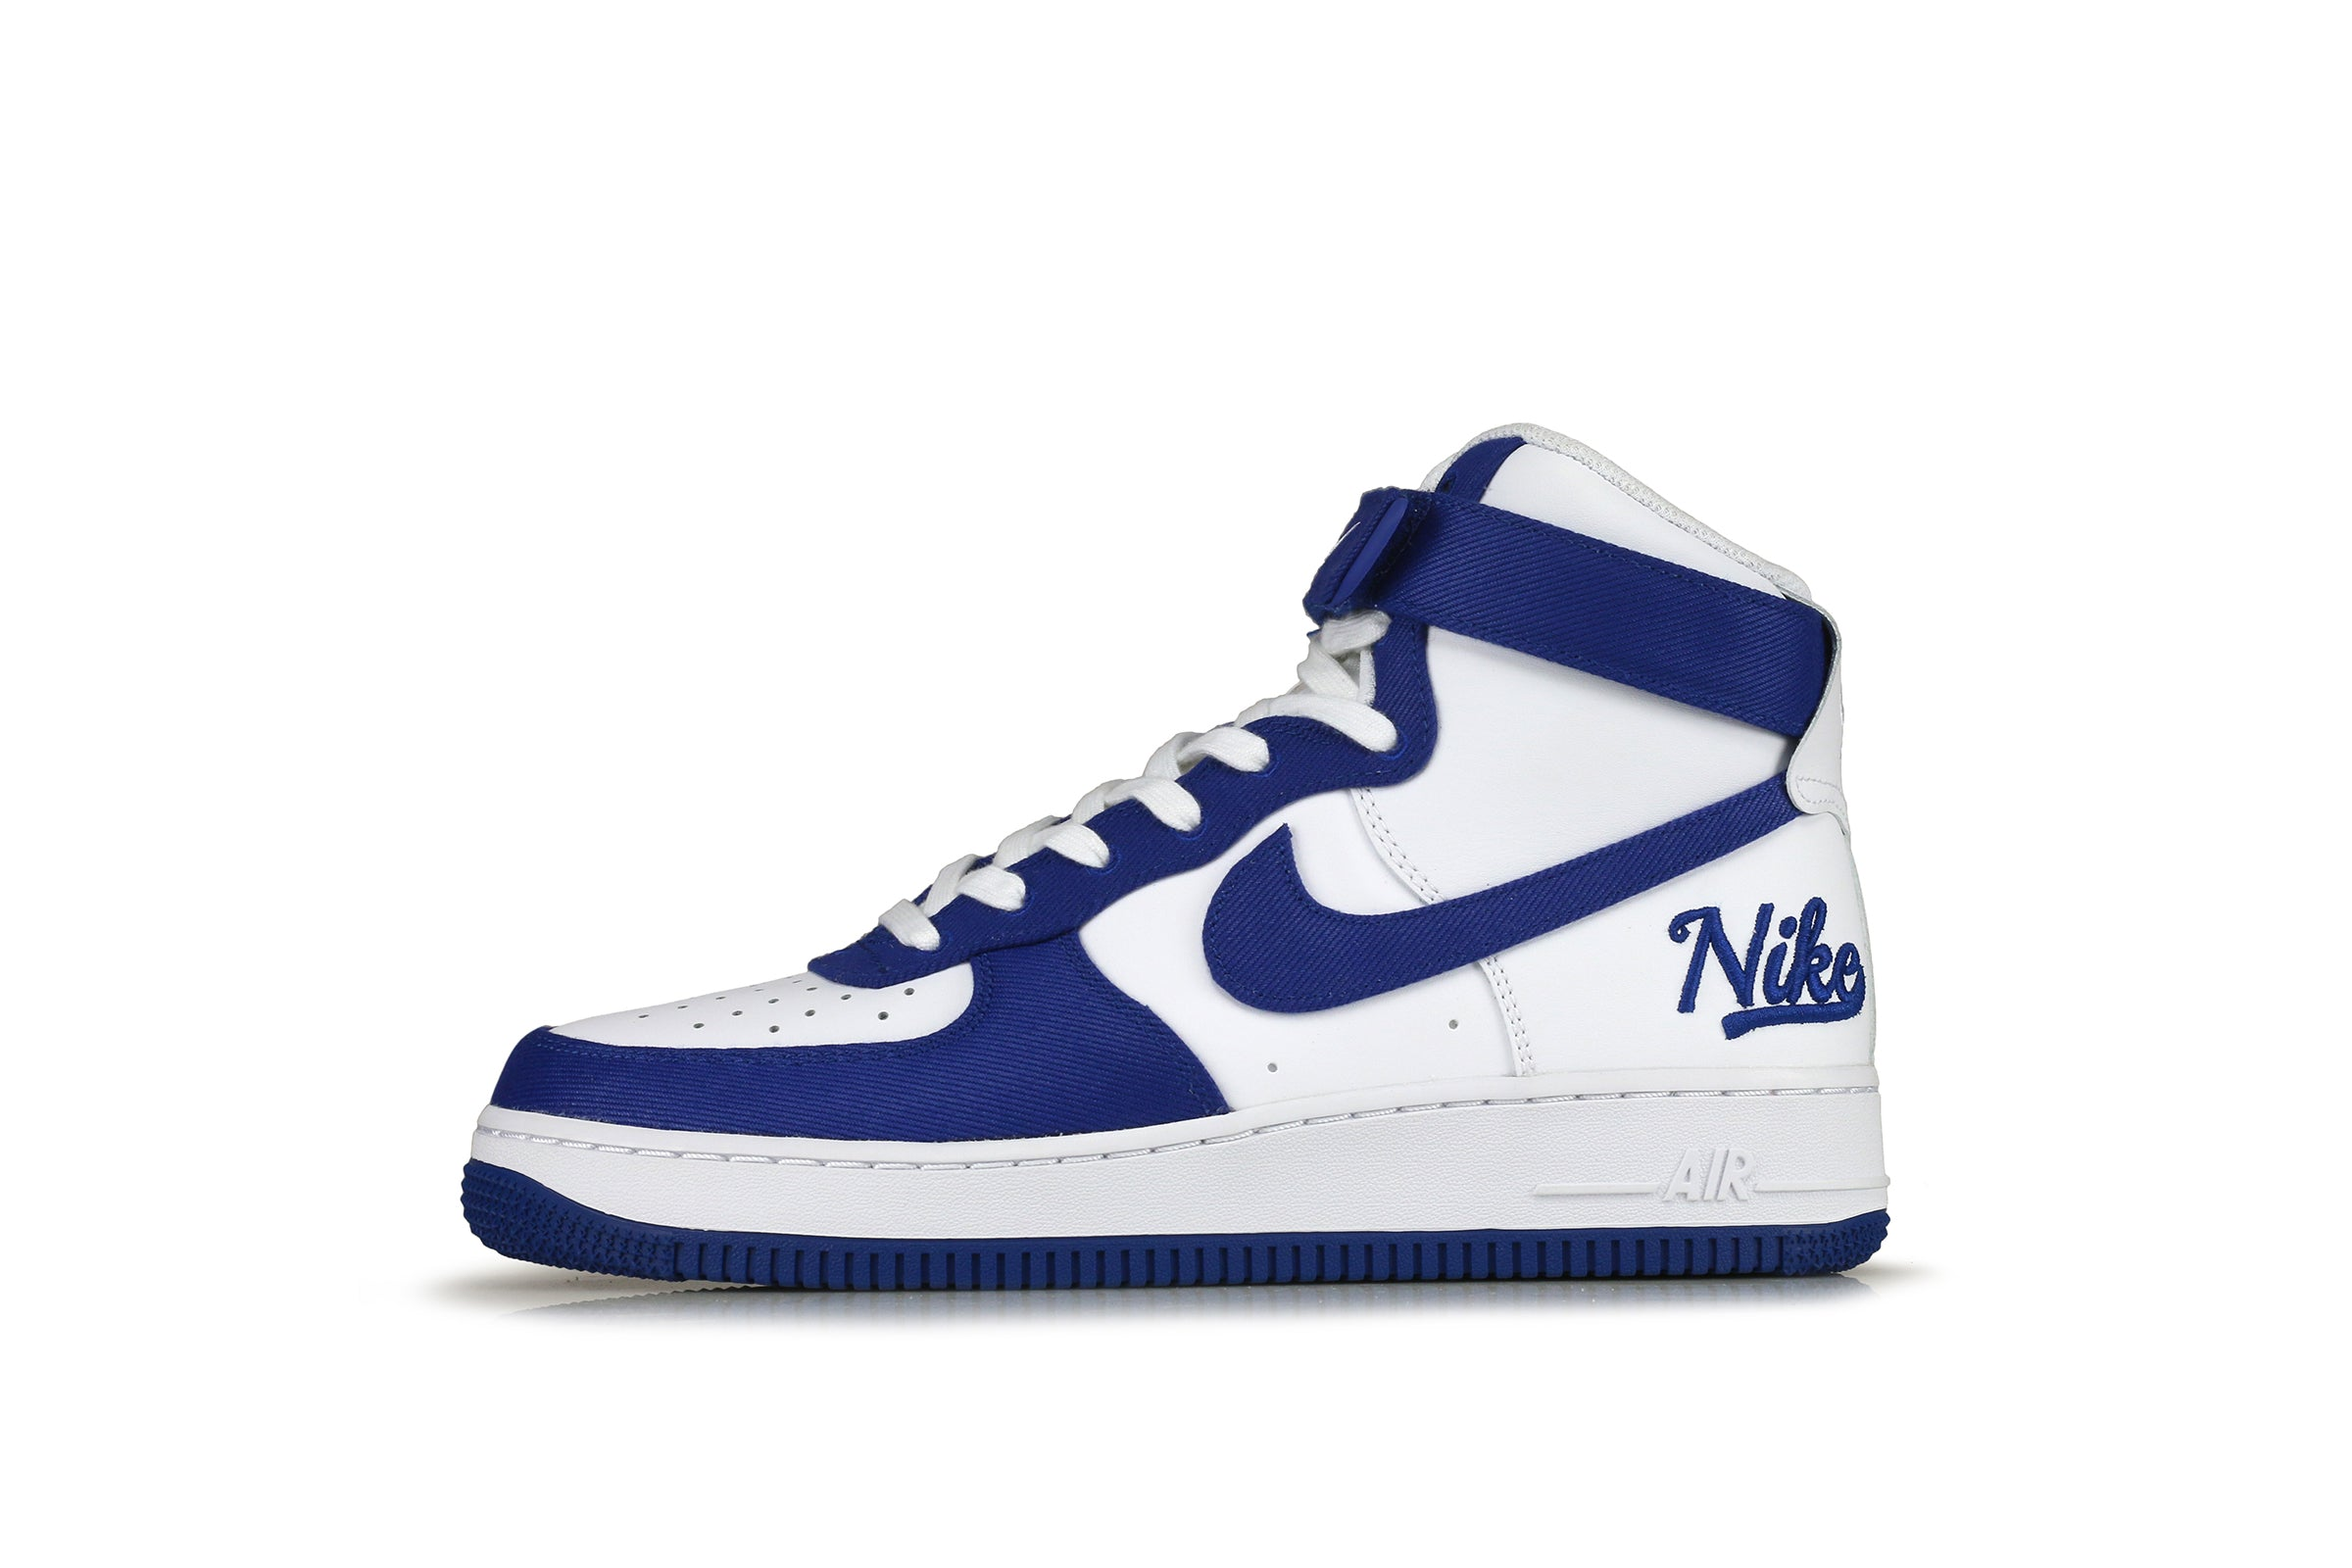 Nike Air Force 1 High 07 LV8 EMB